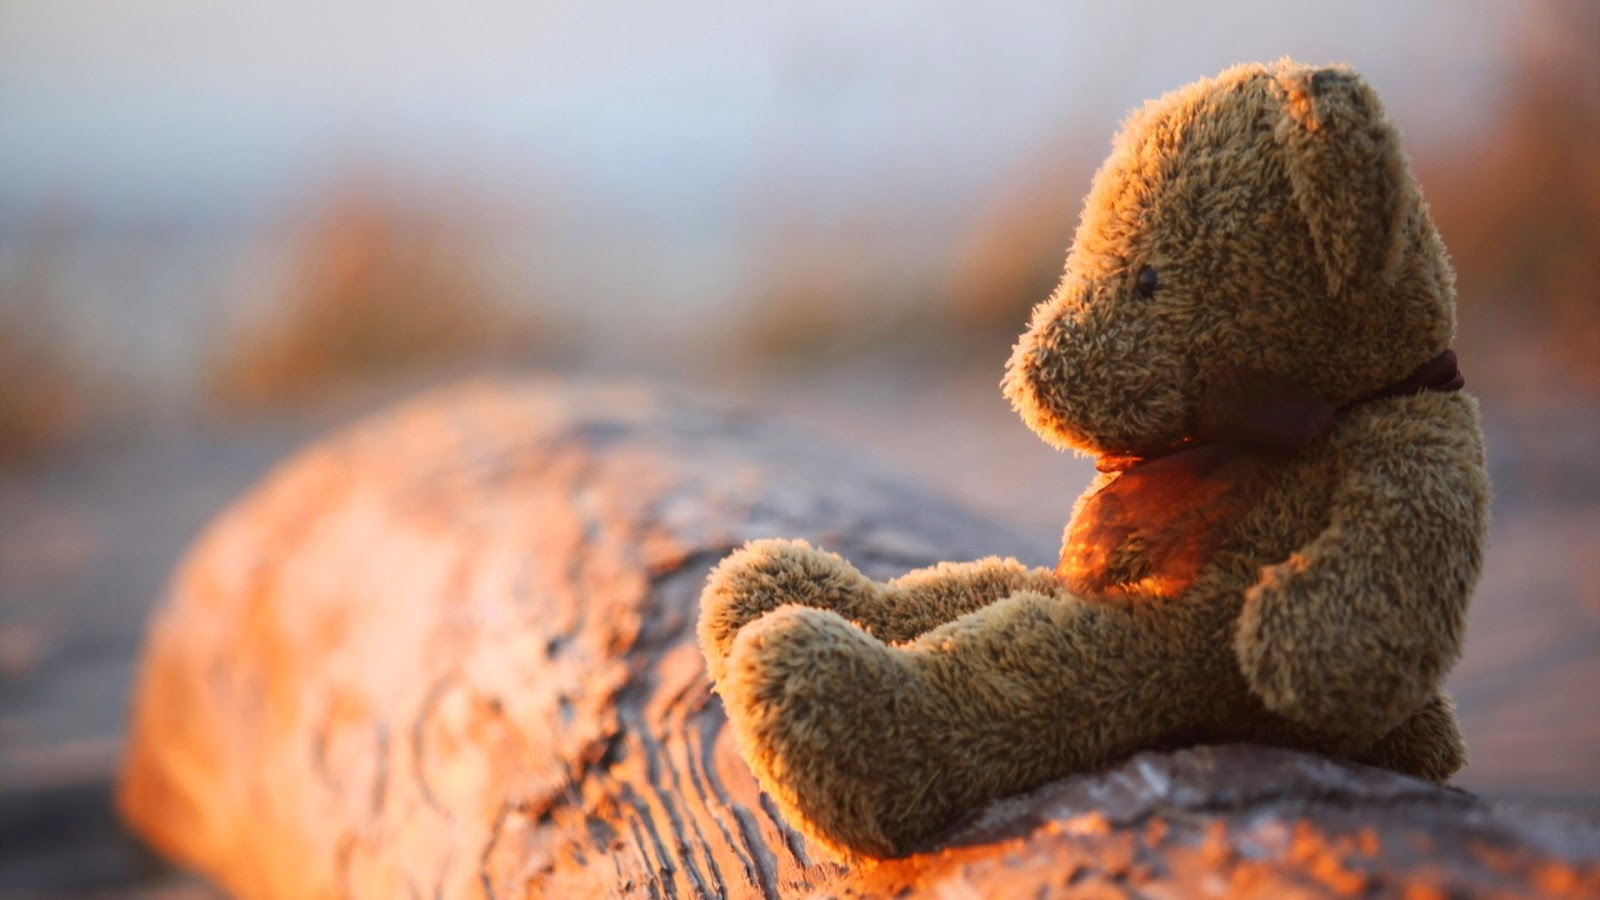 Teddy-Bear-Sad-Alone-1080p-Full-hD-wallpaper.jpg